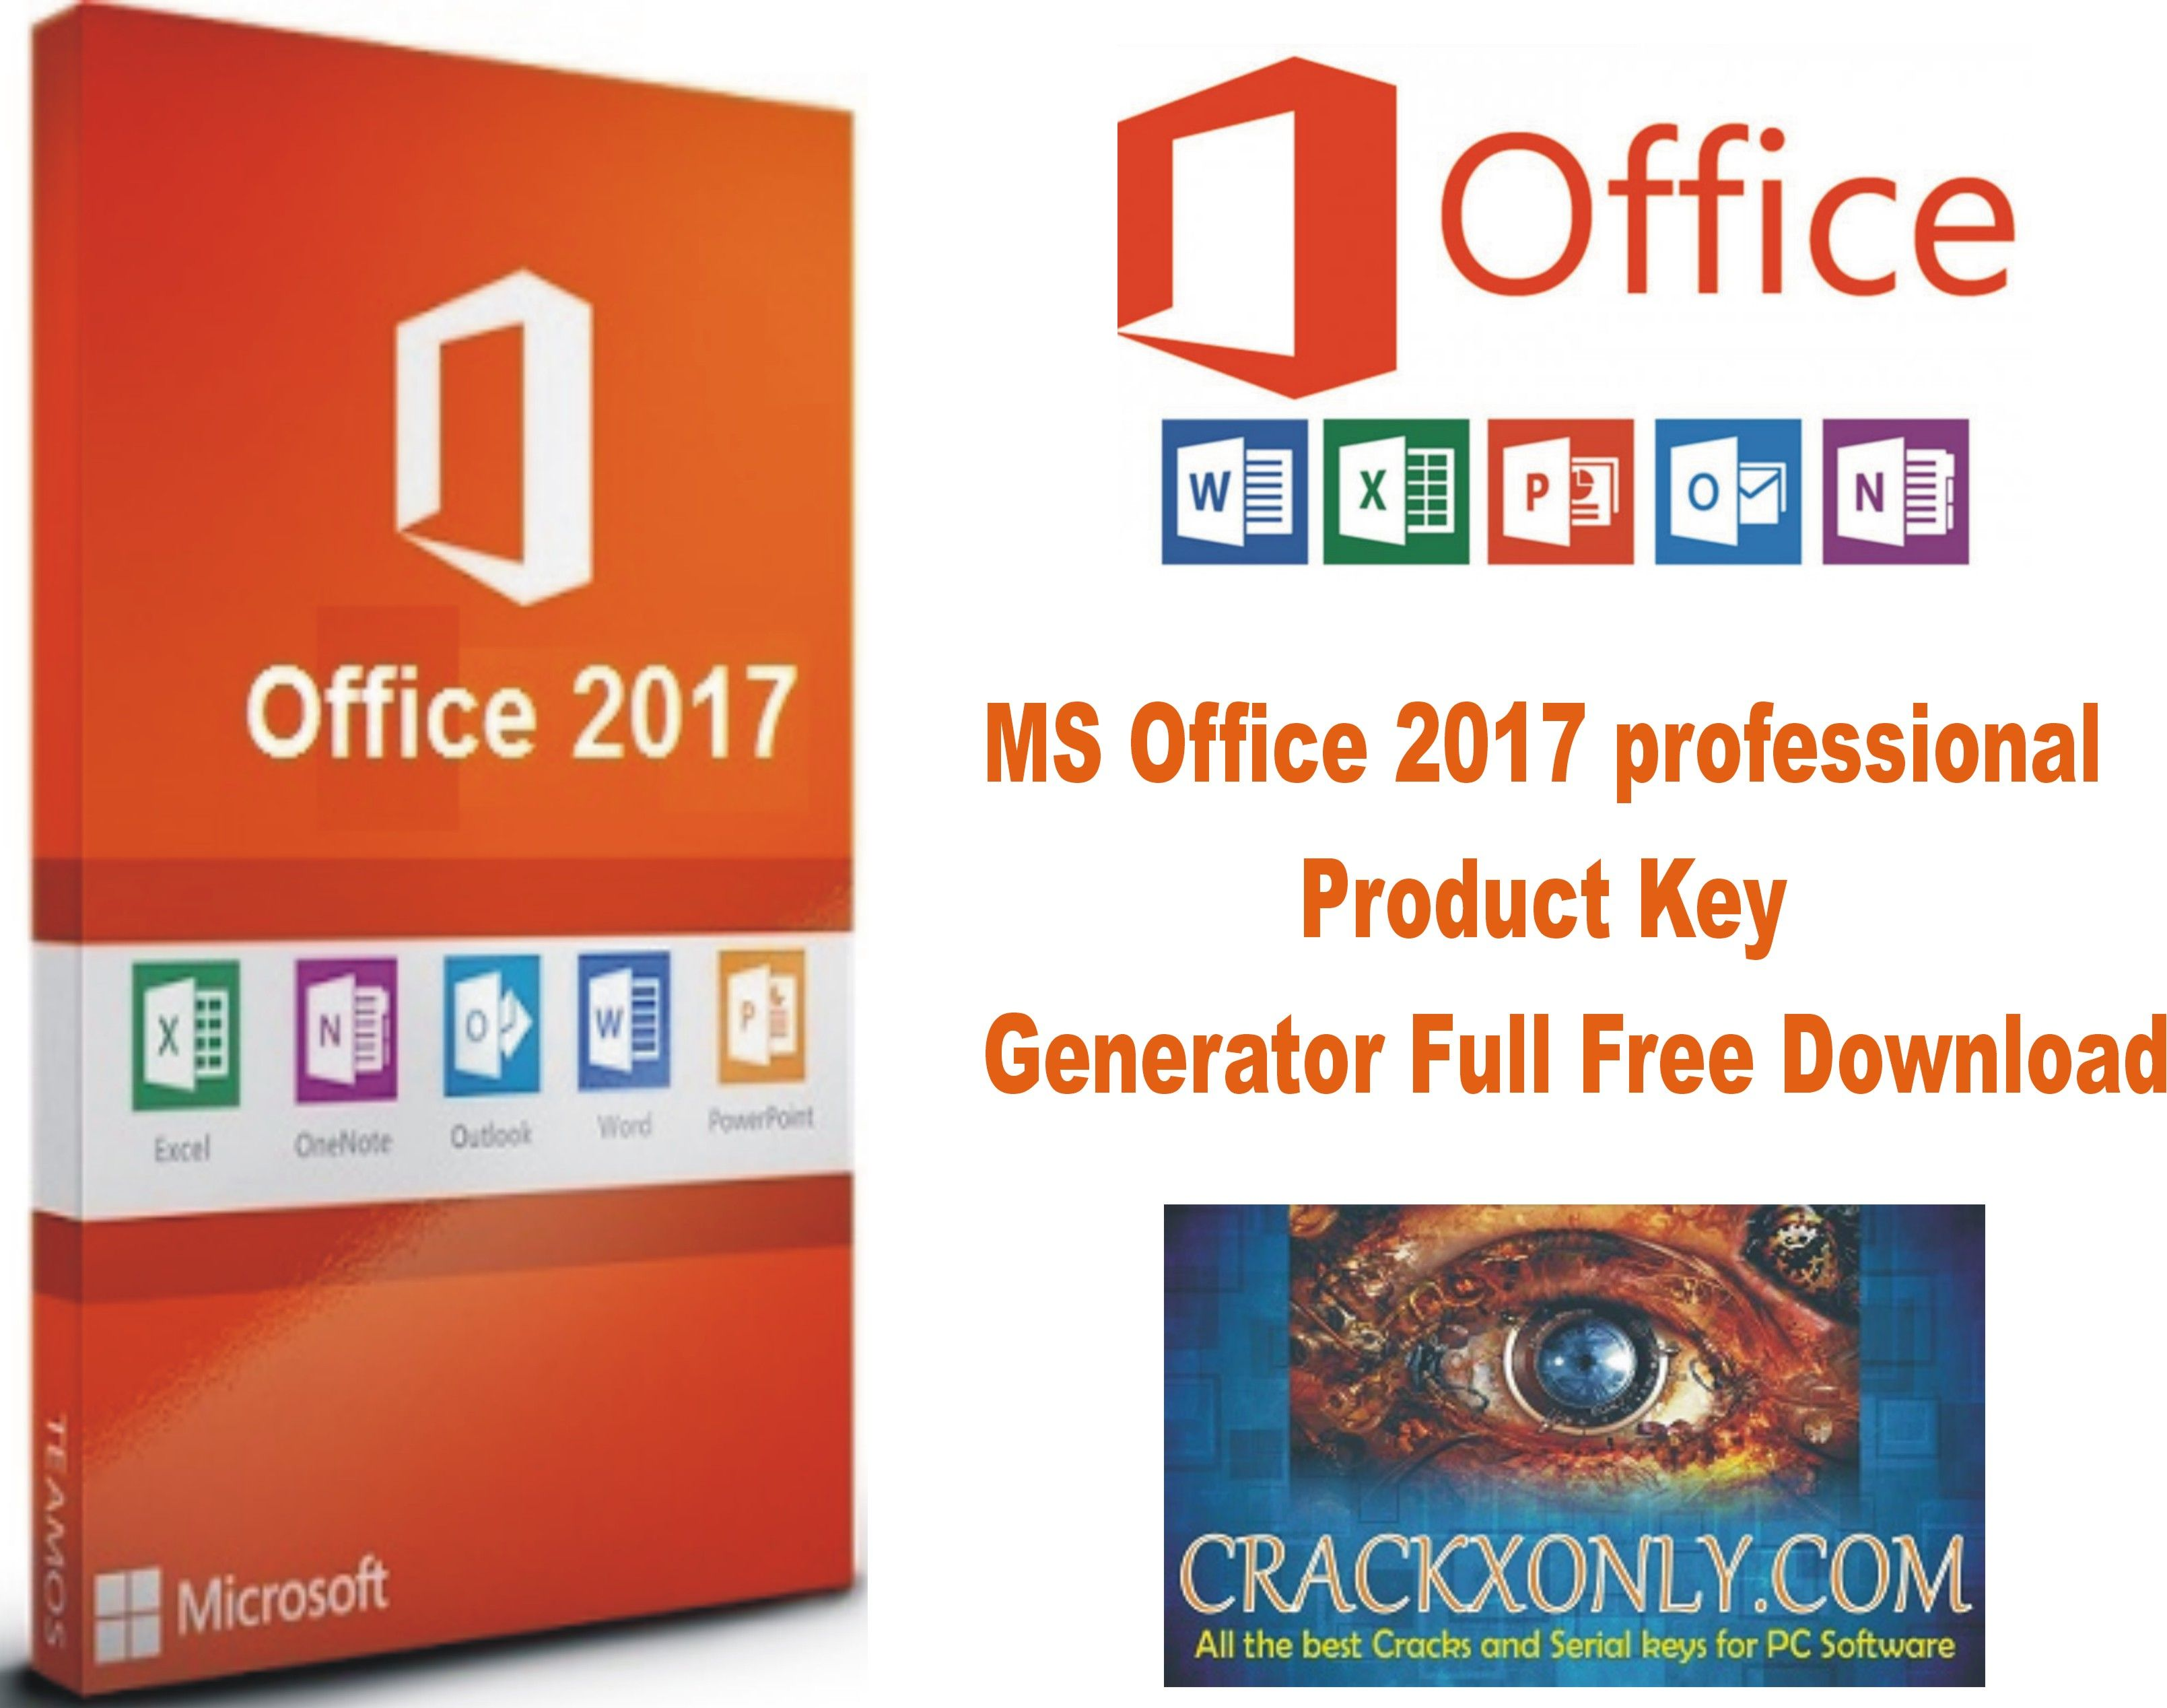 MS Office 2017 professional Product Key Generator Full ...